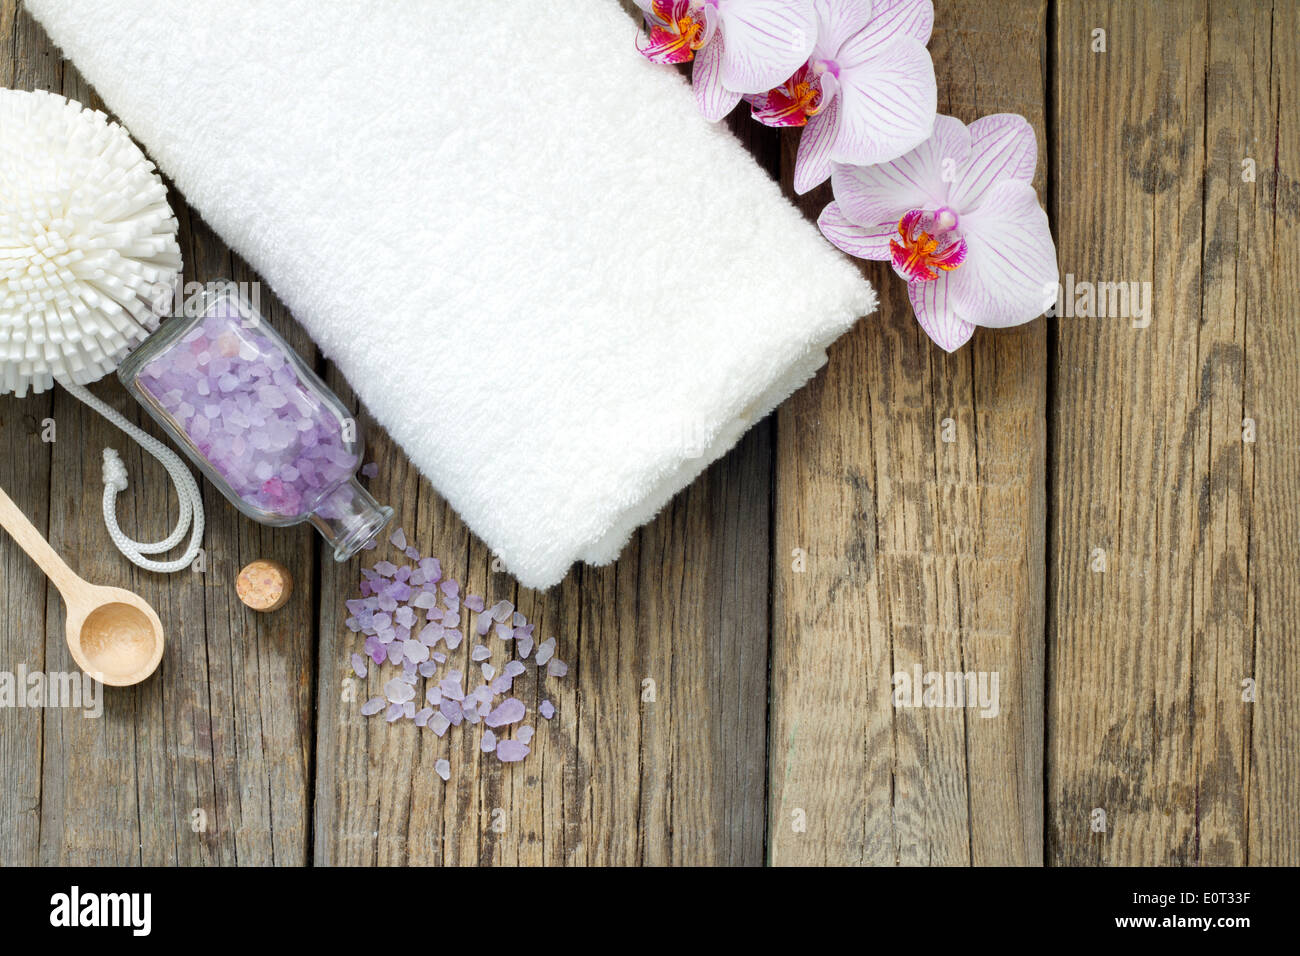 Aromatherapy spa massage tools to body care still life concept - Stock Image